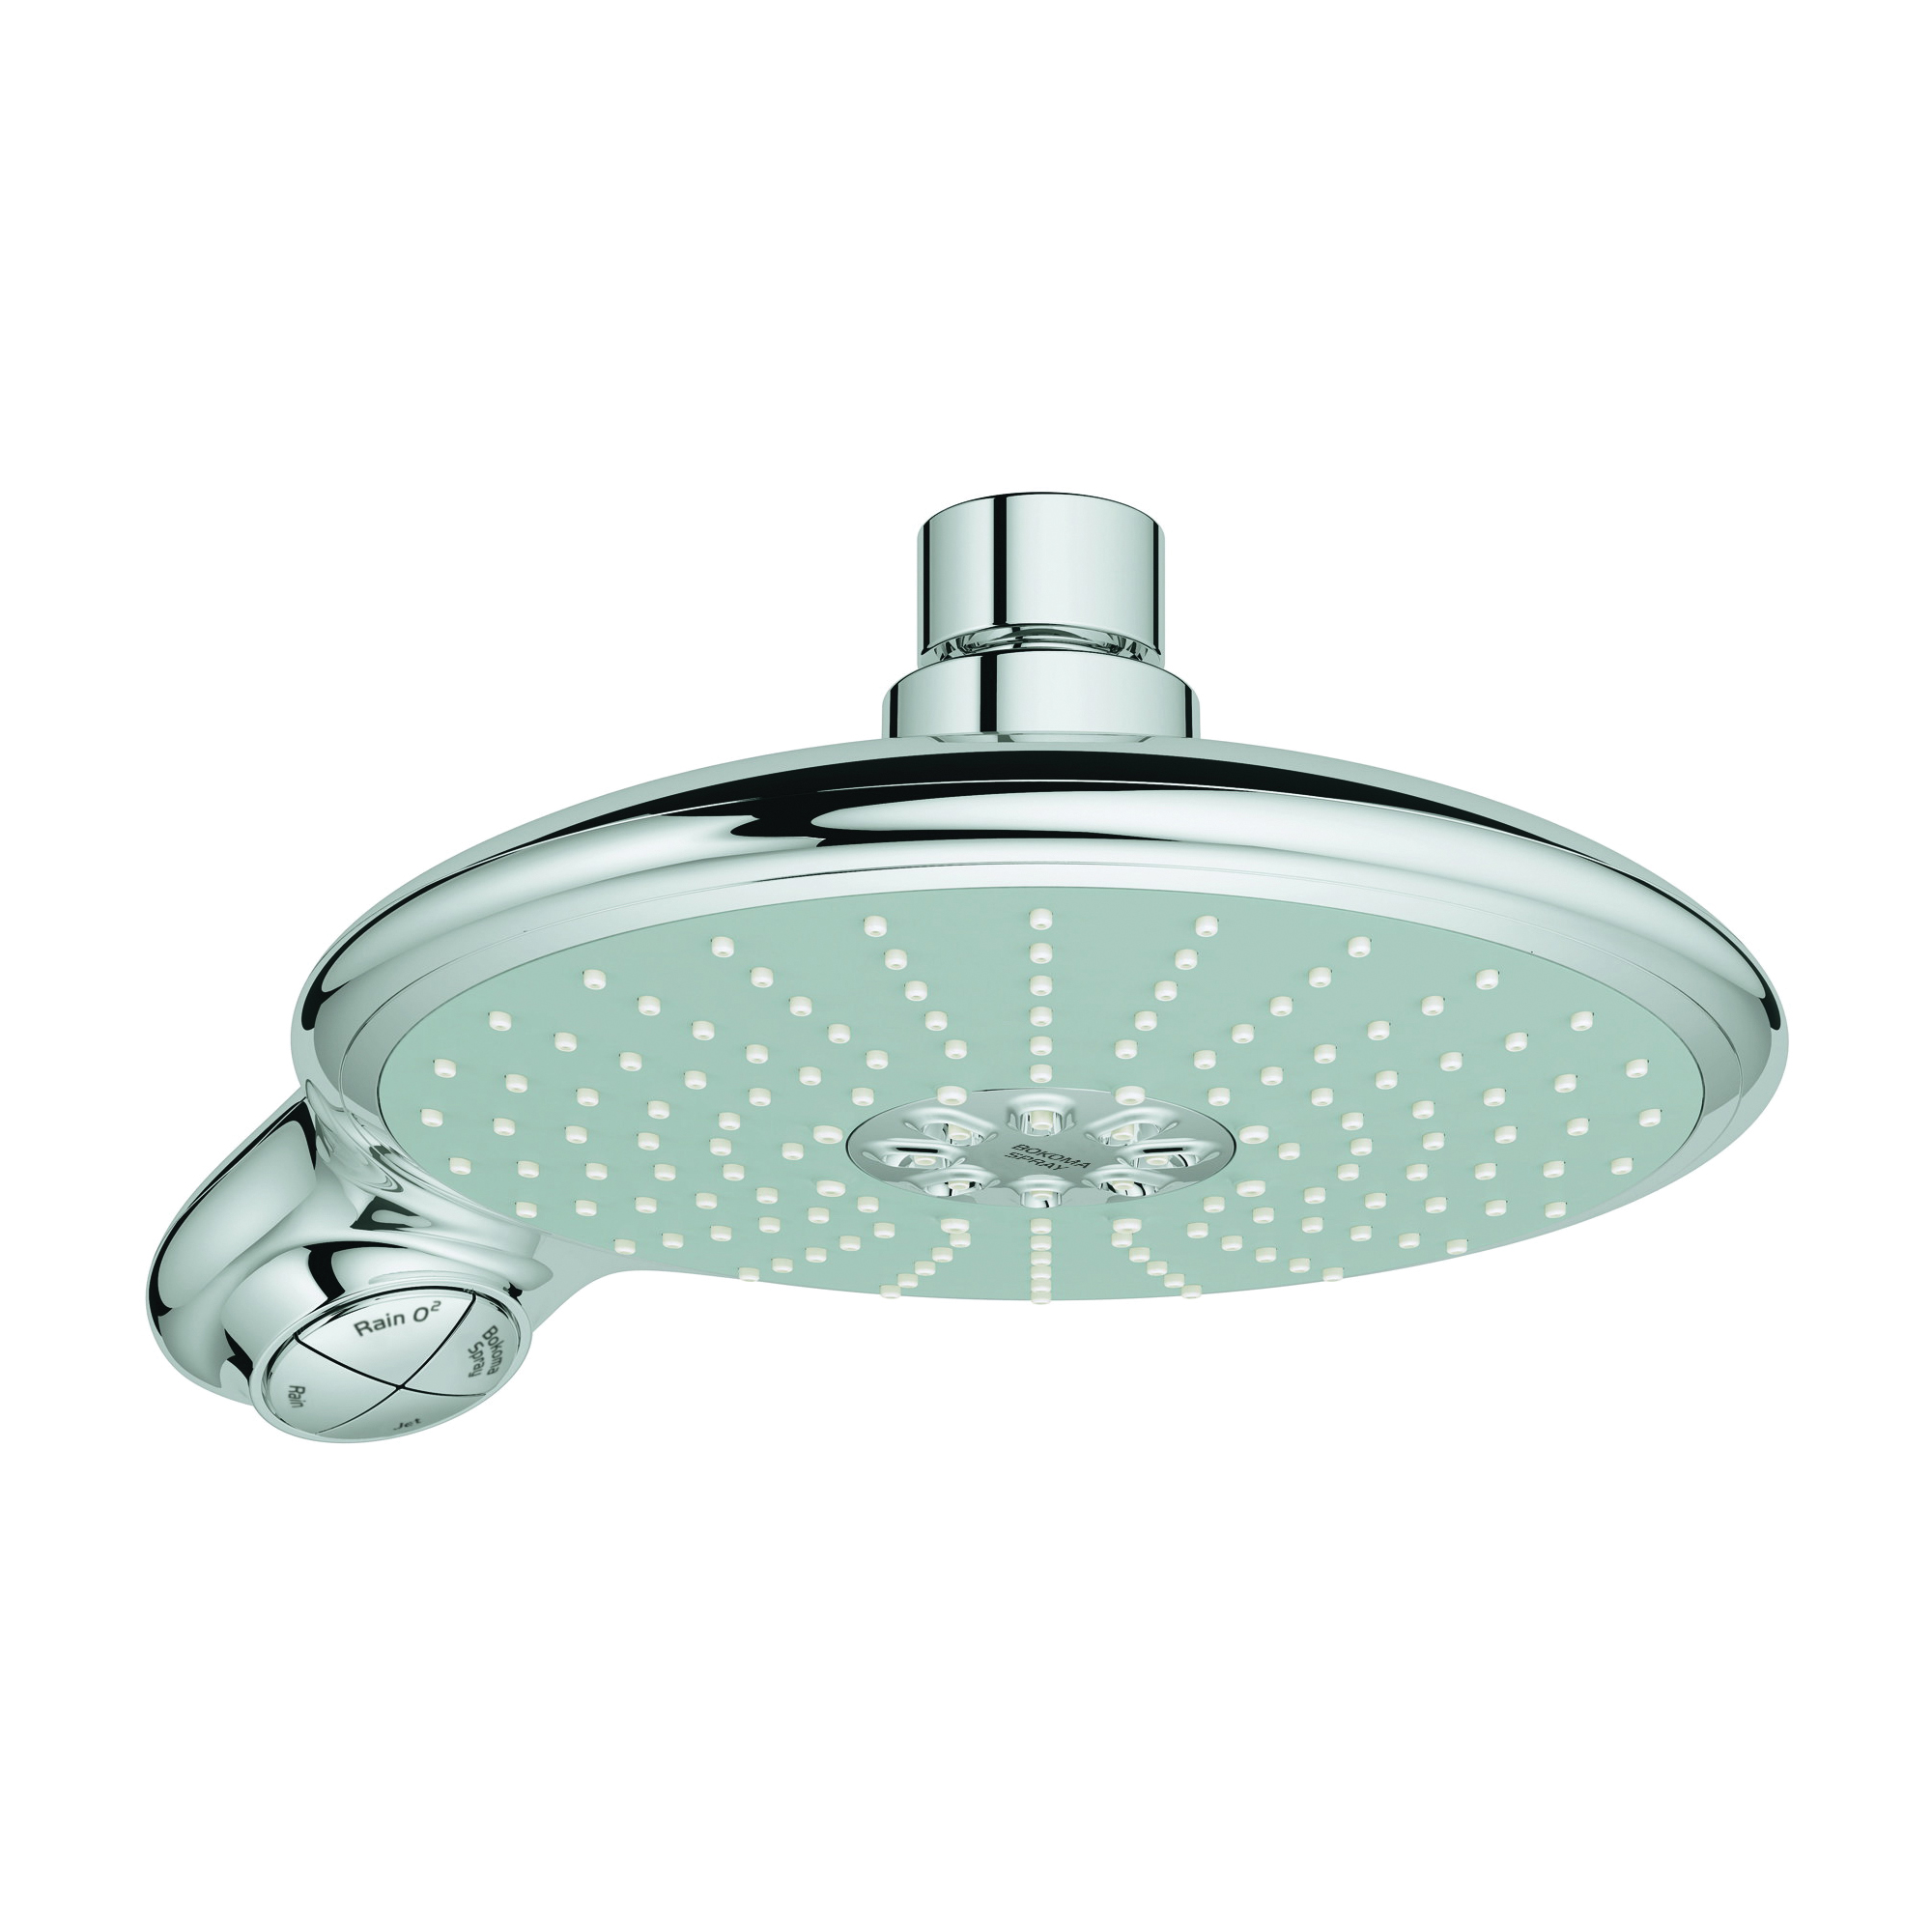 GROHE 27767000 Power&Soul® 190 Shower Head, 2.5 gpm, 2 Sprays, Wall Mount, 7-1/2 in Dia Head, Import